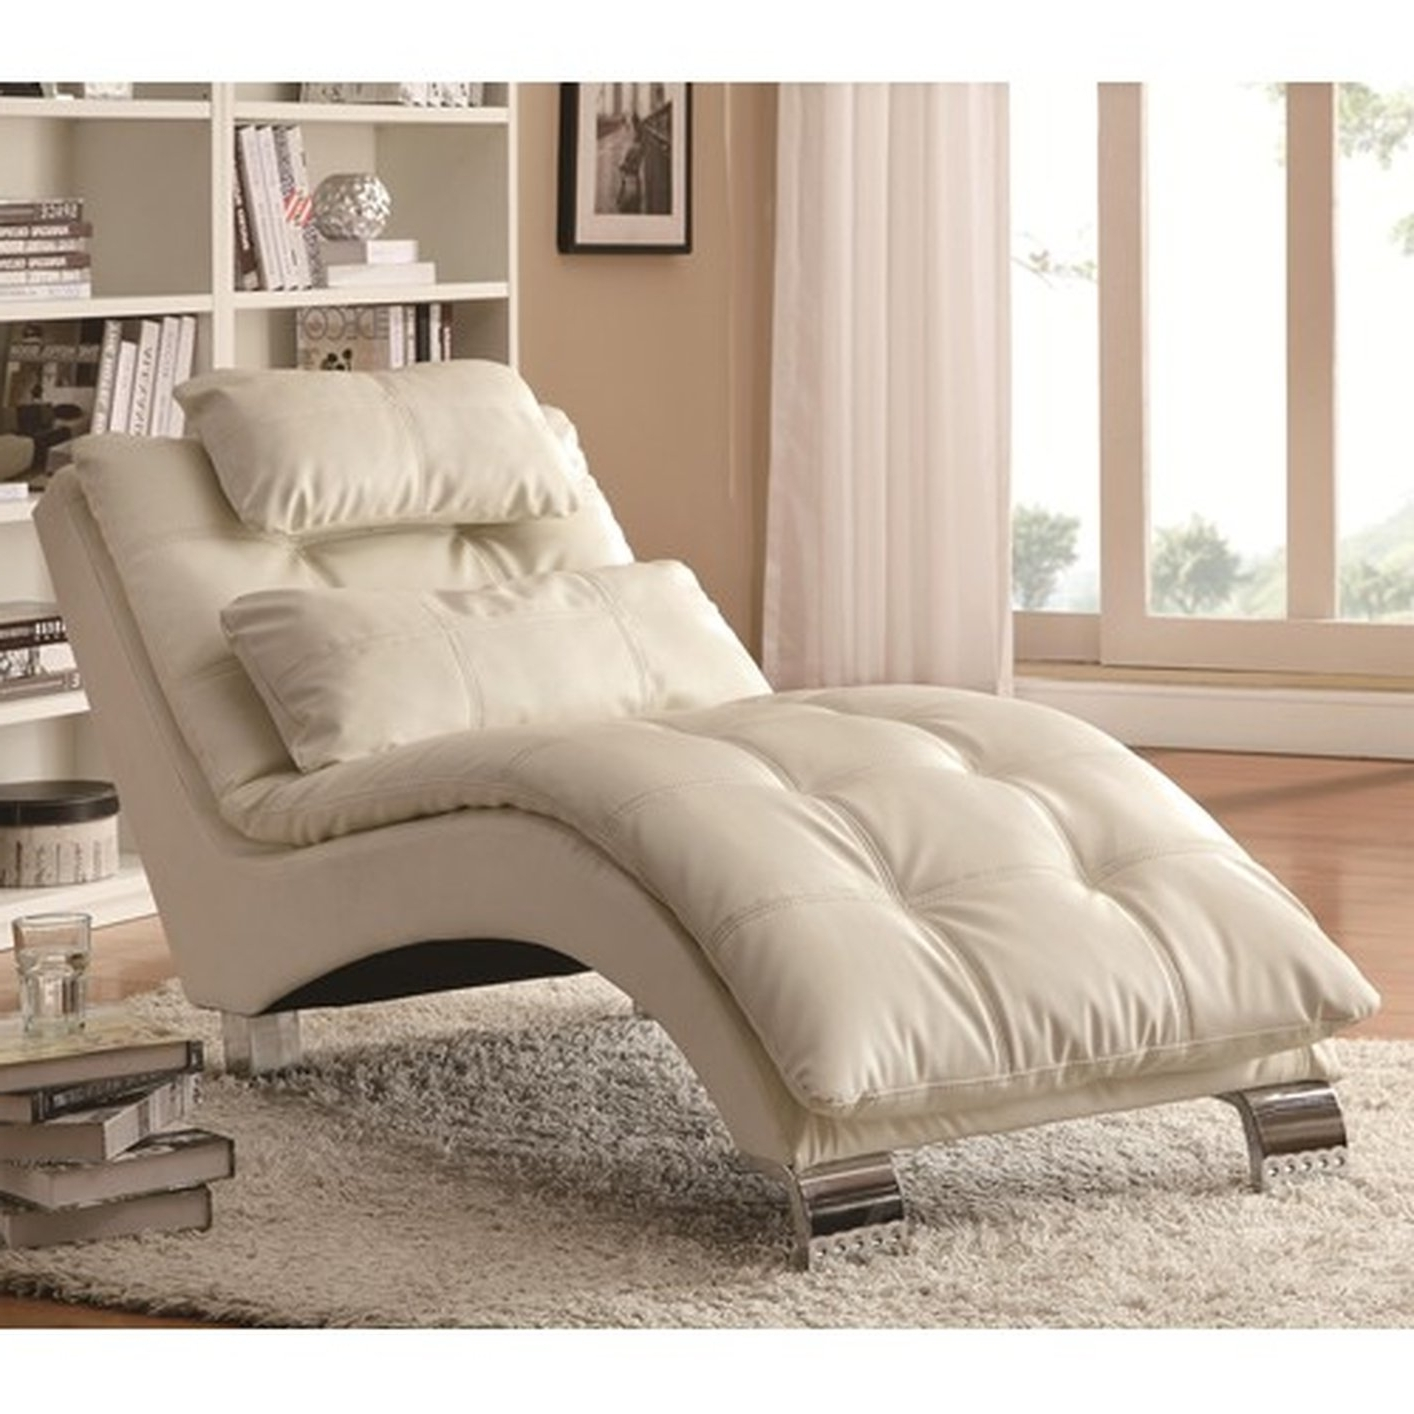 Latest Decor Of White Leather Chaise Lounge With Hstar607Karl Bedroom Pertaining To White Leather Chaises (View 7 of 15)